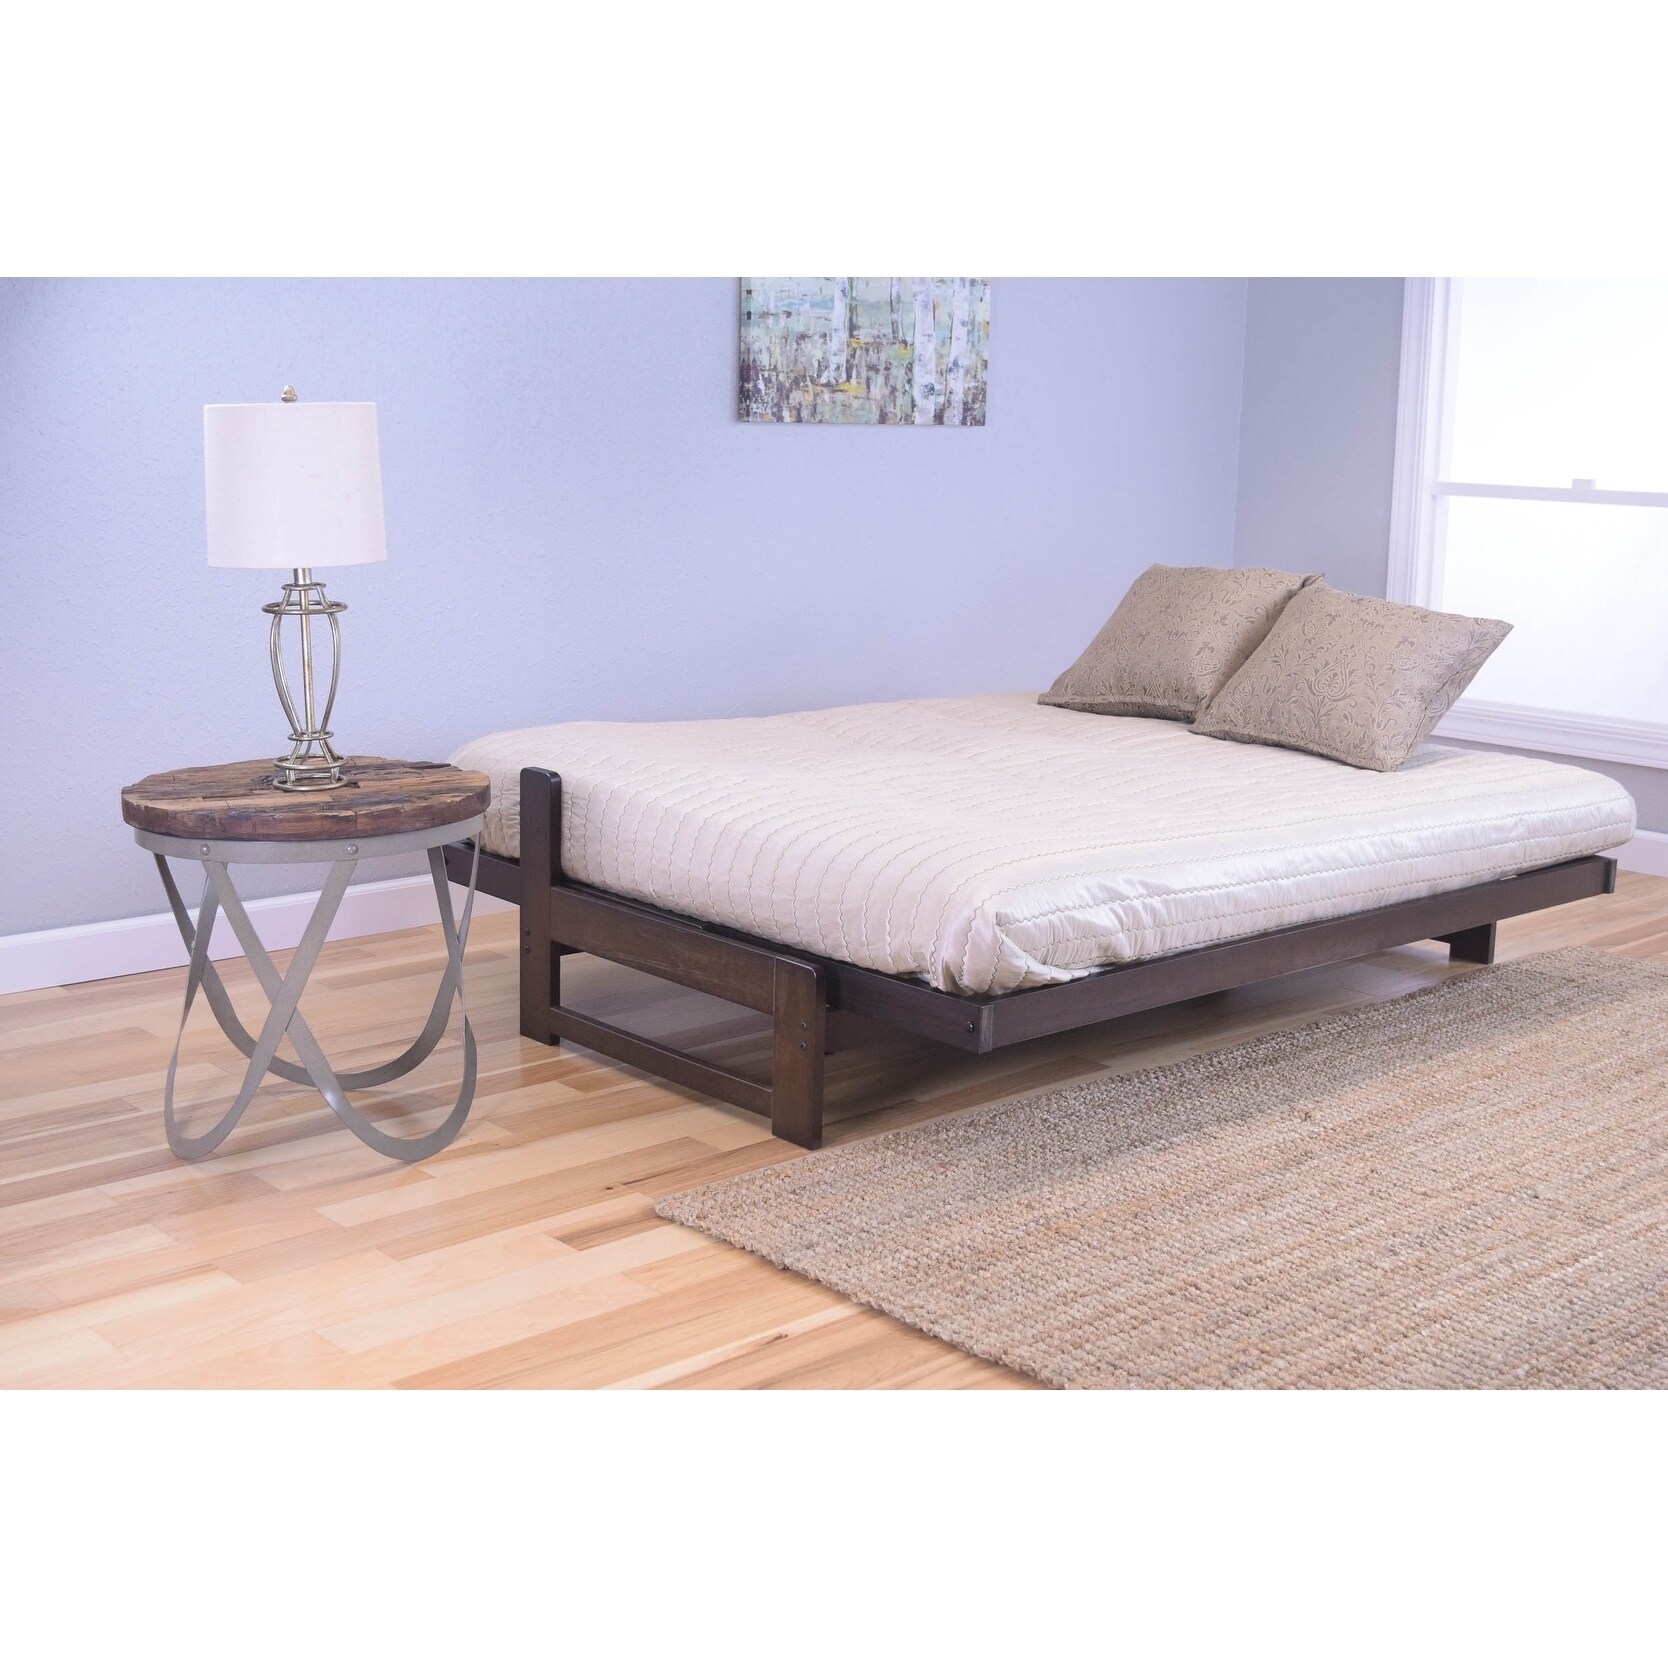 wayfair ca and futon international futons matress furniture mattress pdp orlando primo